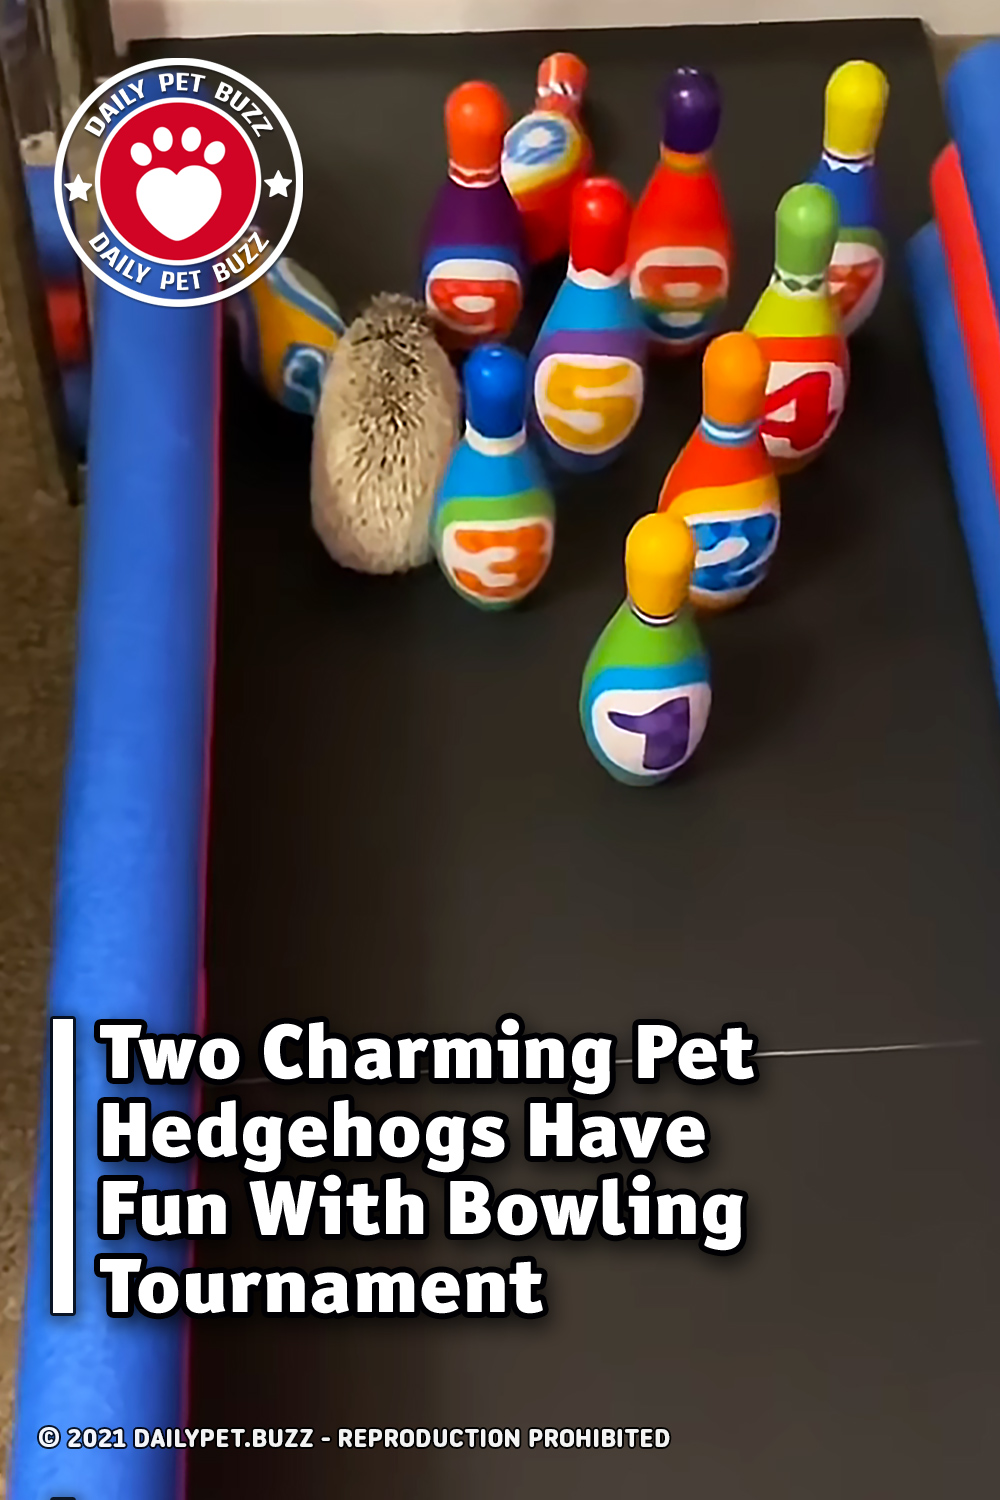 Two Charming Pet Hedgehogs Have Fun With Bowling Tournament